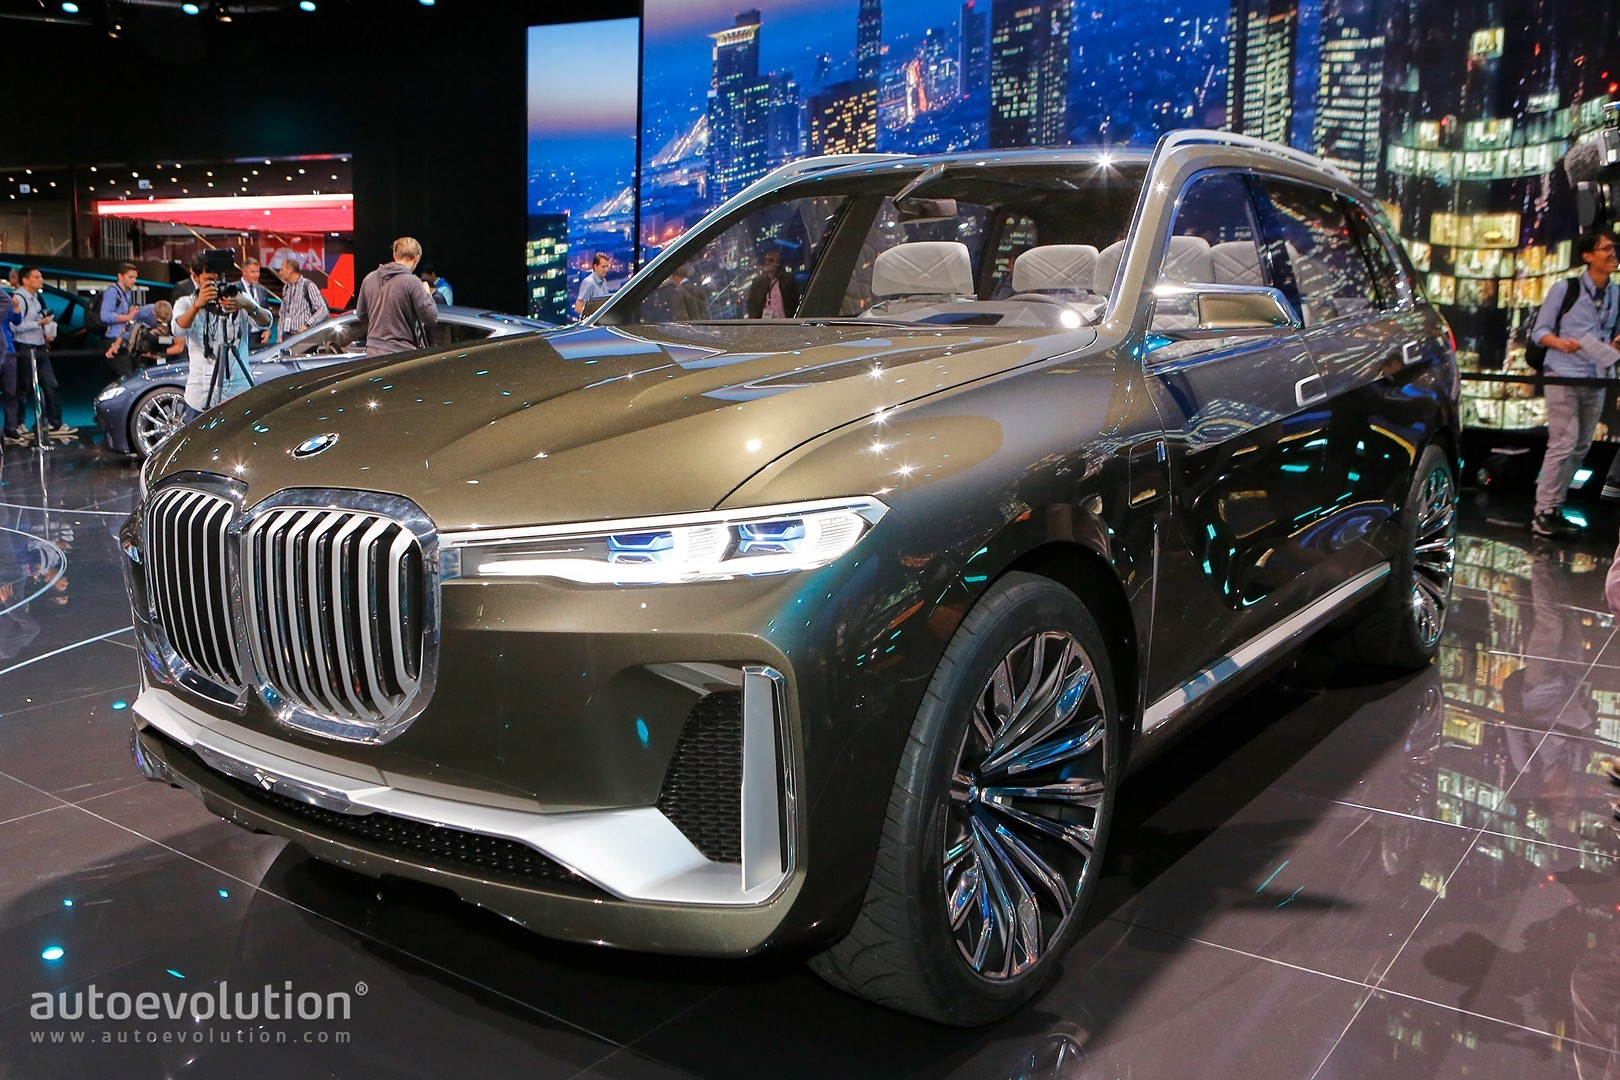 BMW X7 SUV Concept Is a Range Rover Lookalike in Frankfurt ...